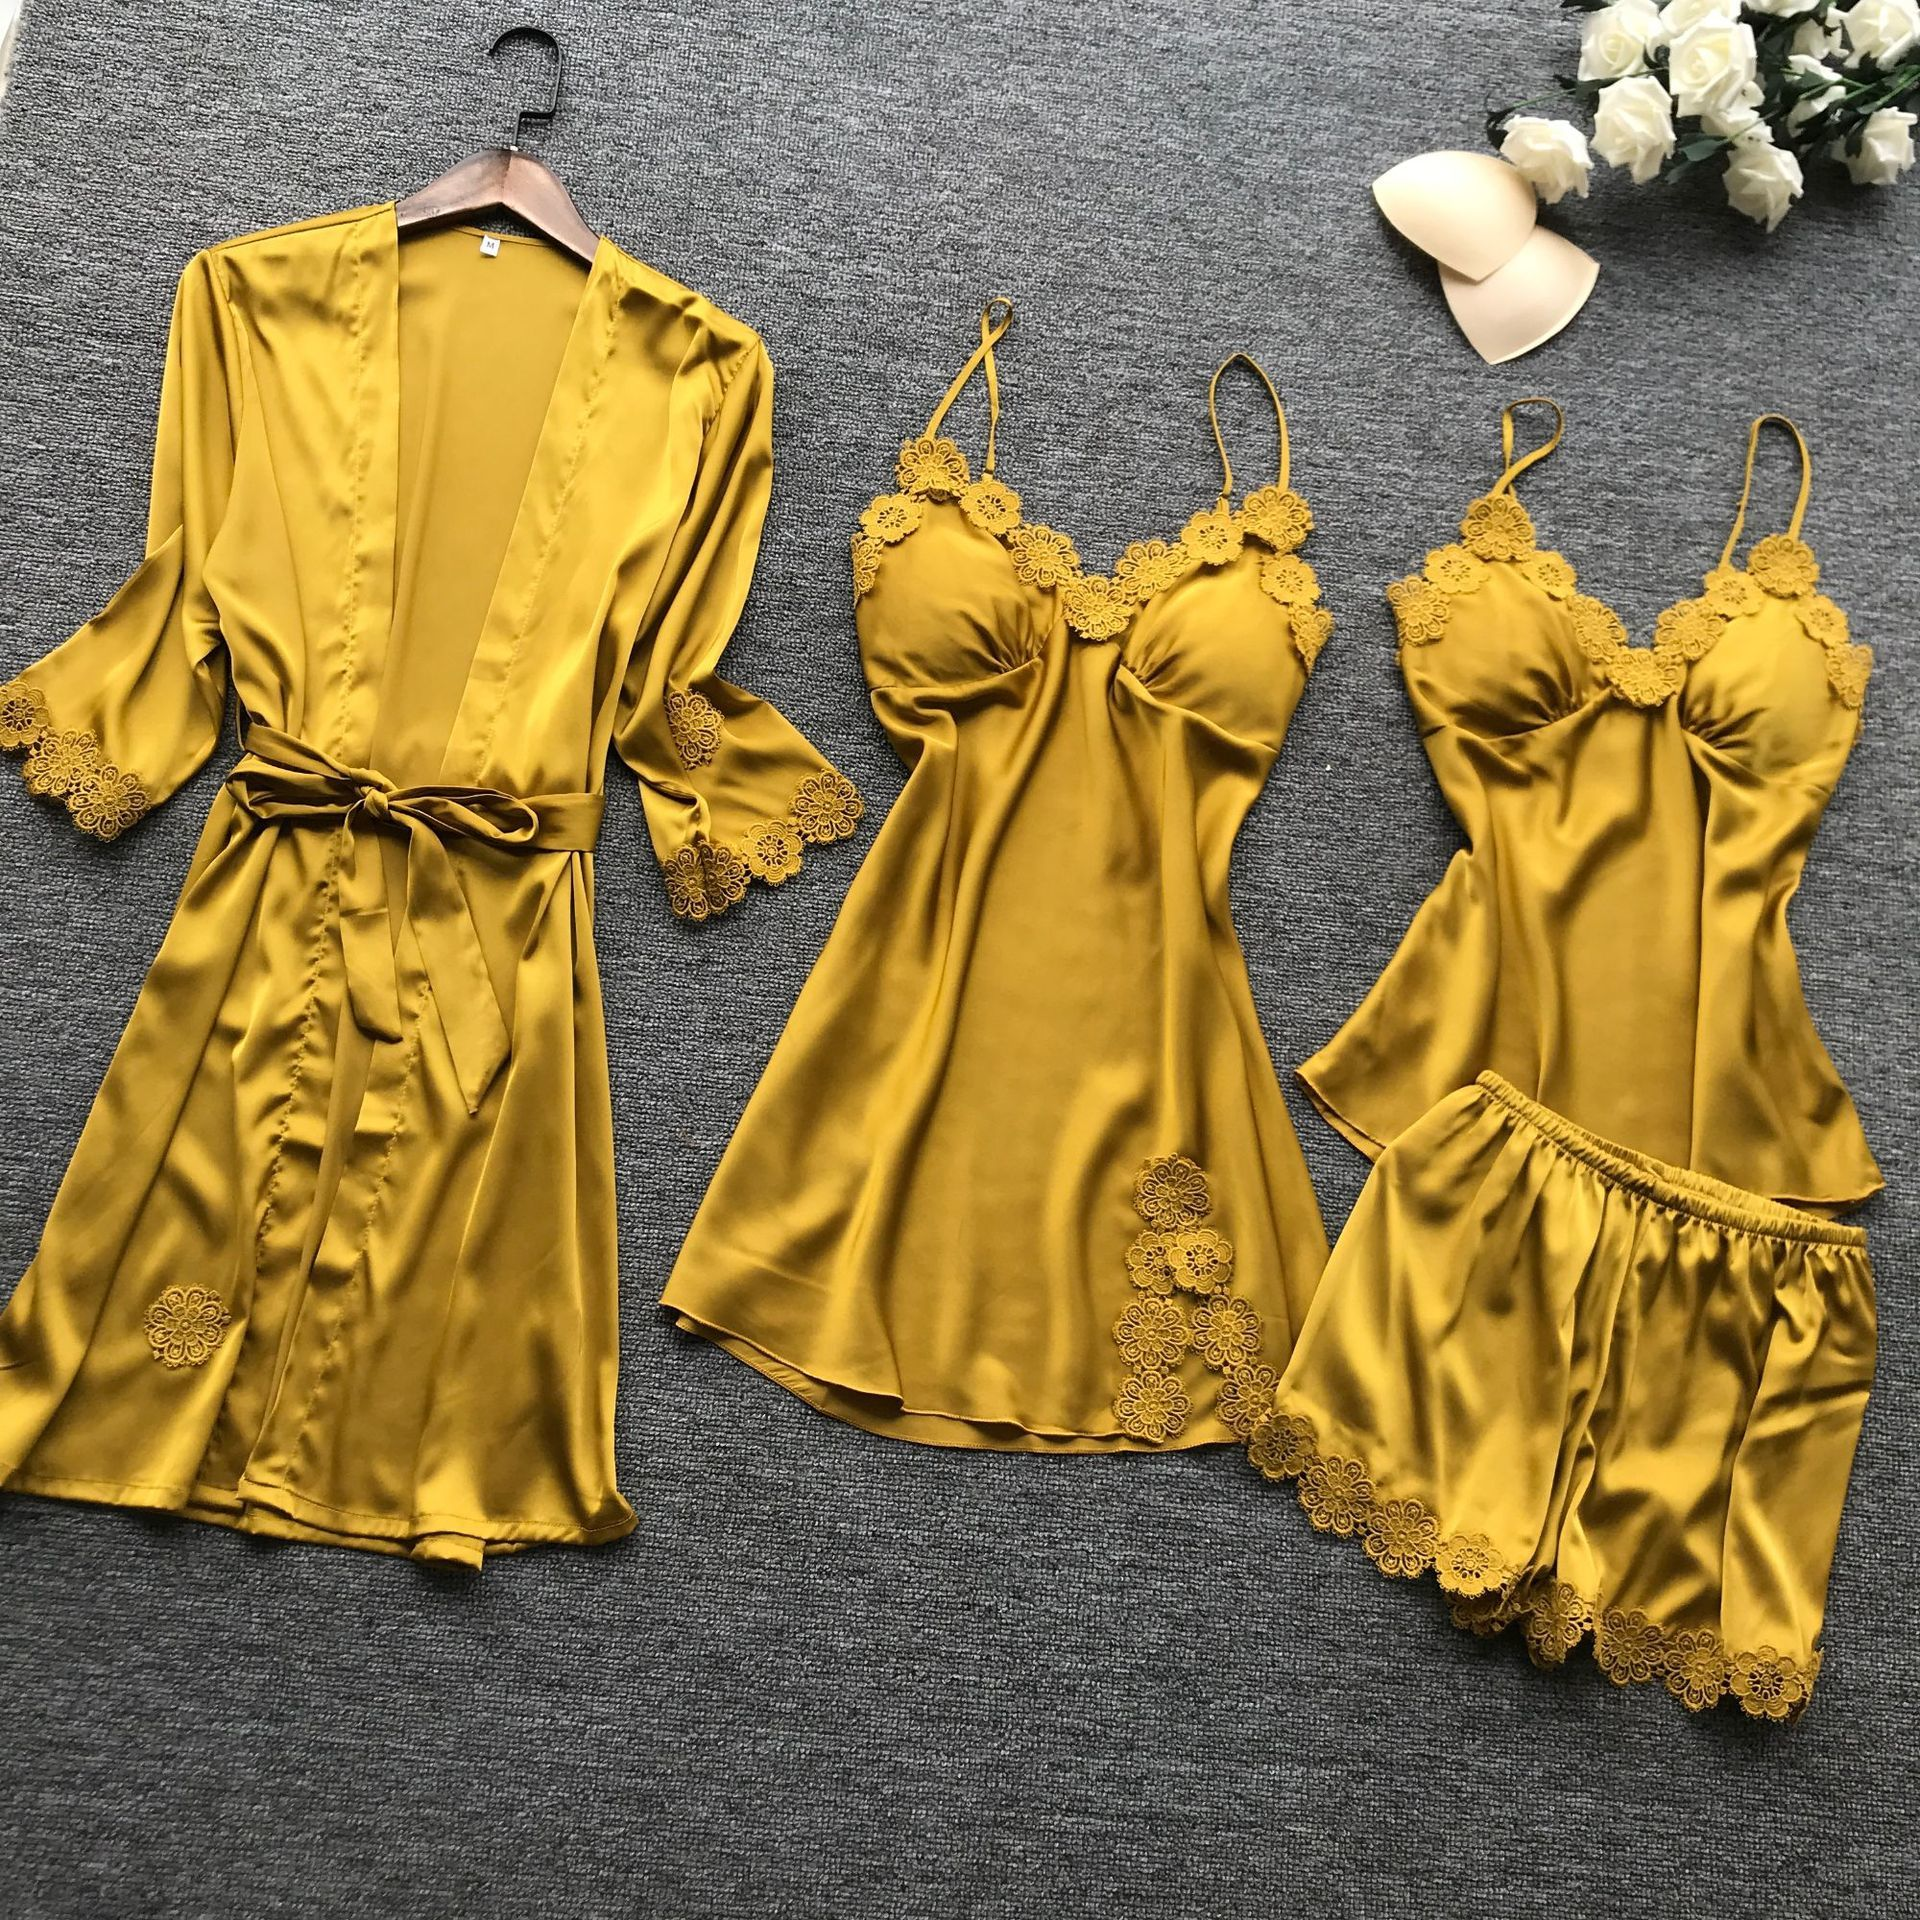 Lisacmvpnel 4 Pcs Women Stain Pajamas Embroidery With Chest Pad Sexy Sleepwear With Belt Cardigan Pyjama